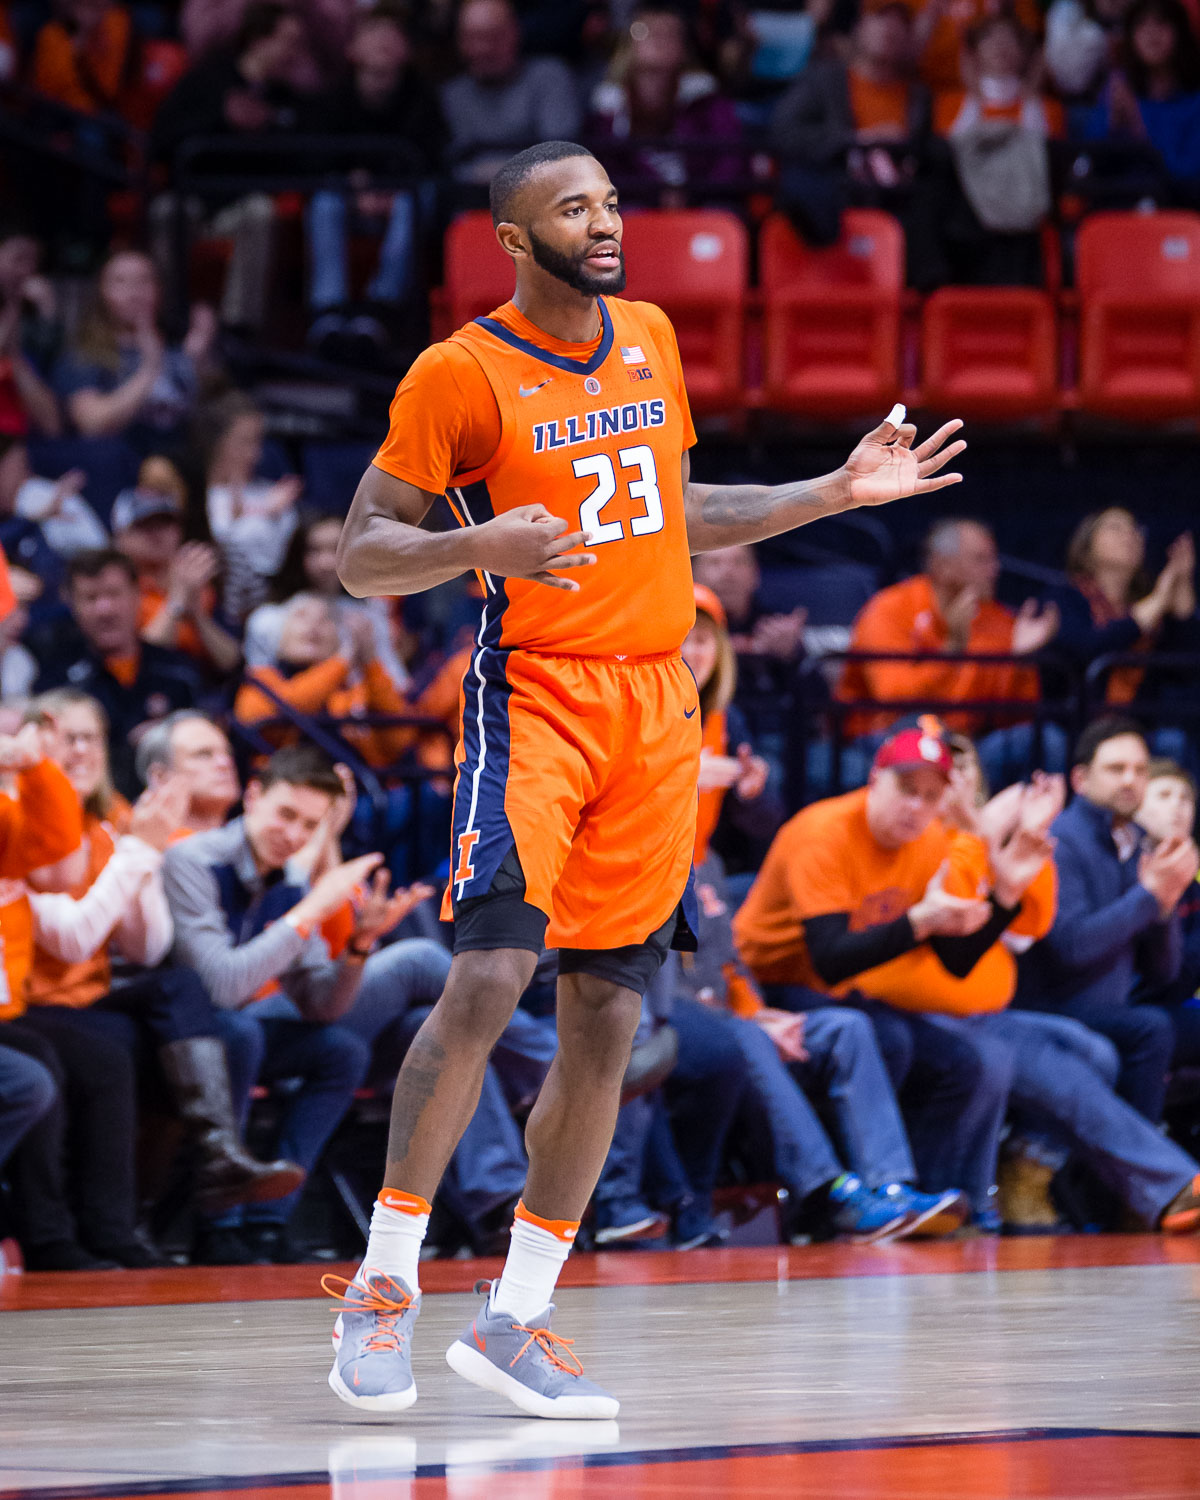 Illinois guard Aaron Jordan celebrates after making a 3-pointer during the game against Northwestern at the State Farm Center on Sunday. The Illini won 81-76.